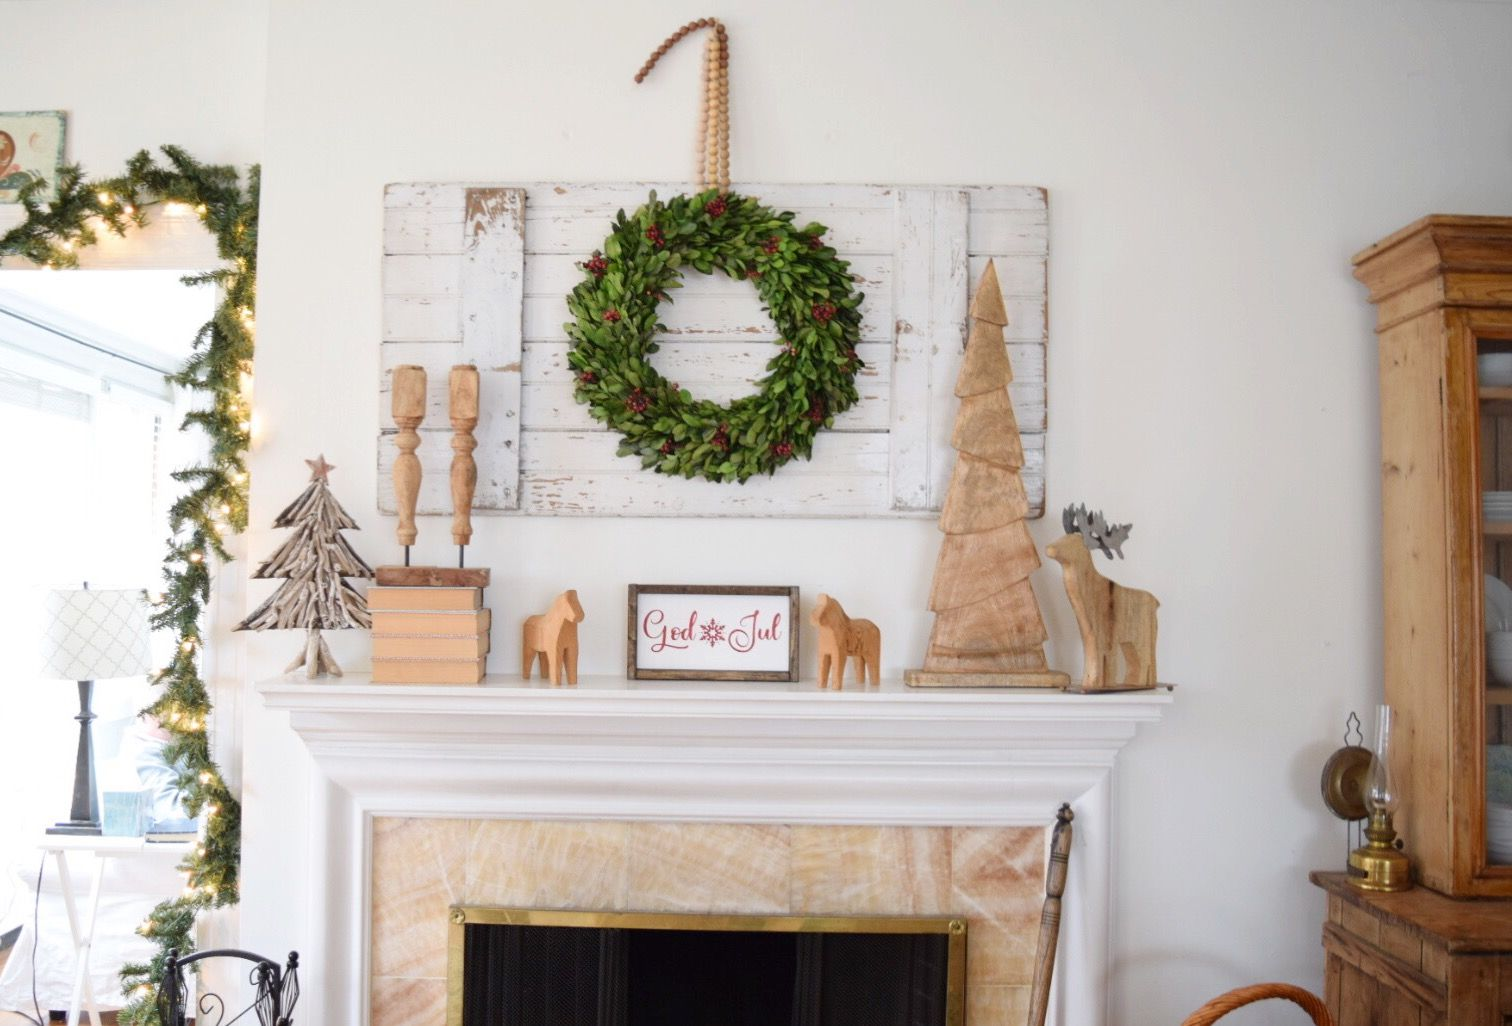 20 Festive Christmas Mantel Ideas How To Style A Holiday